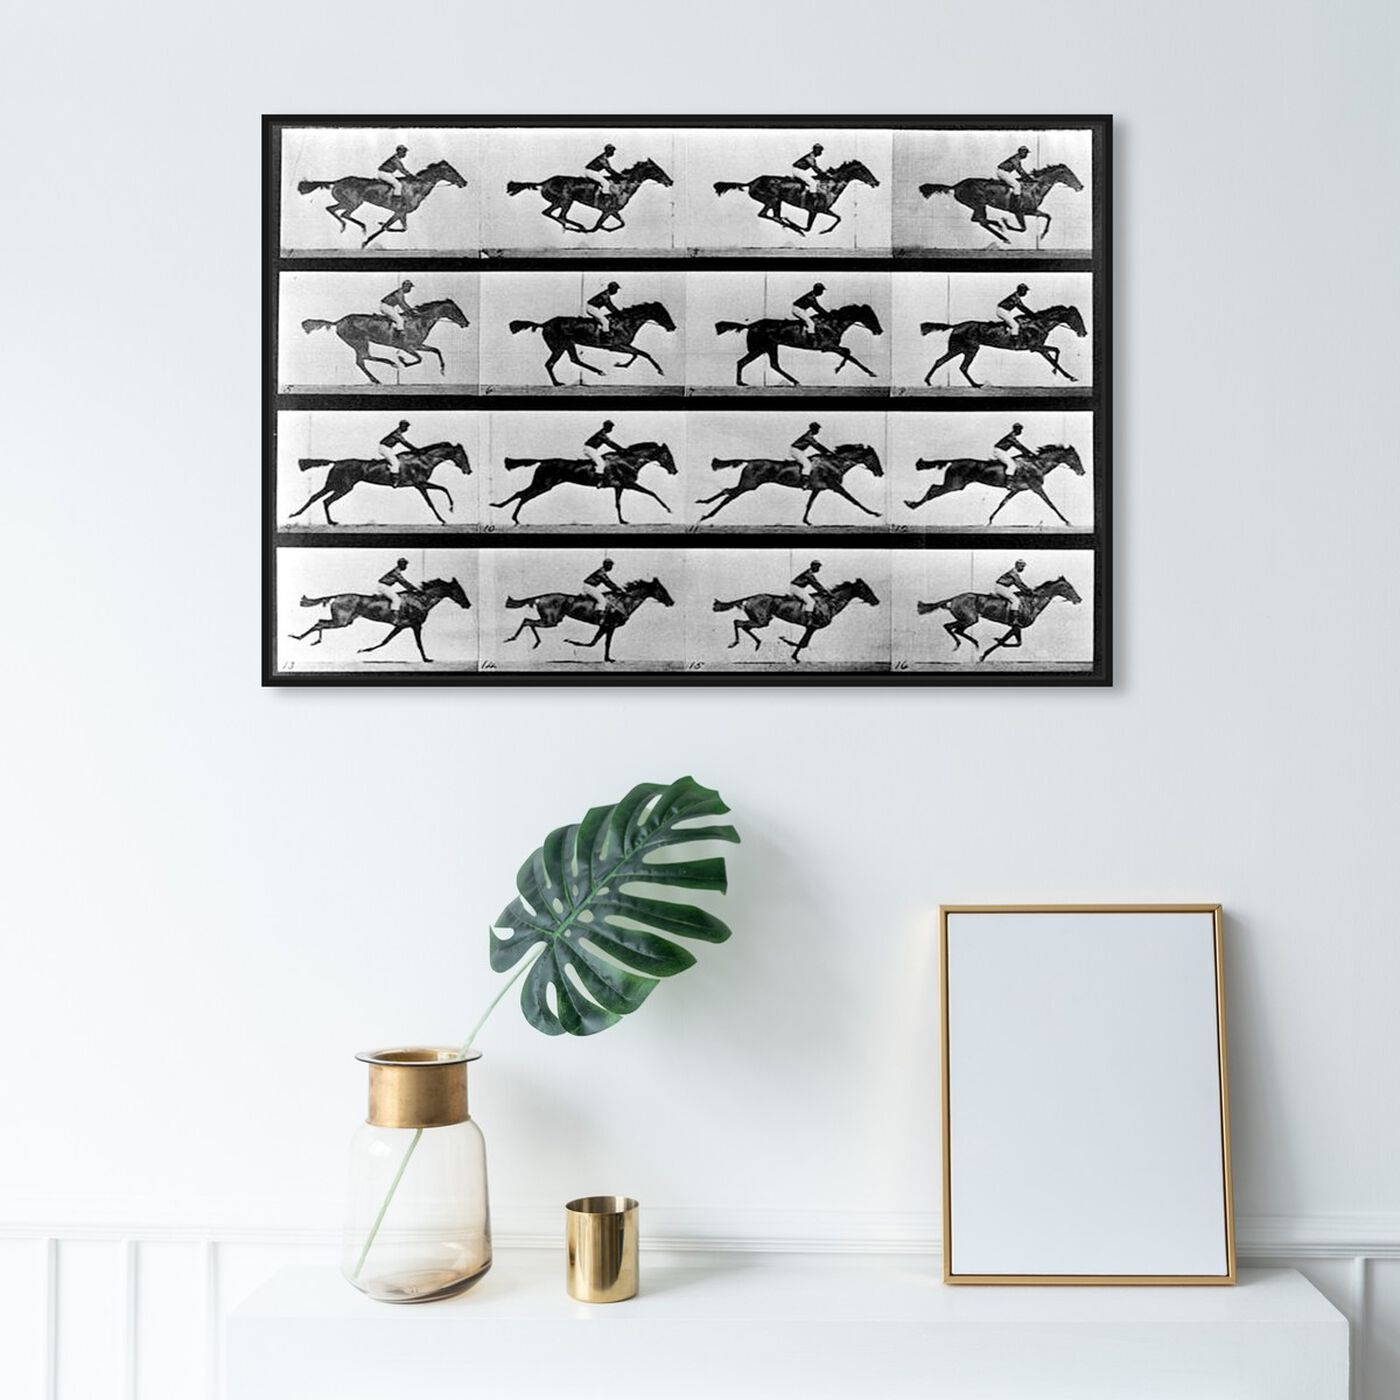 Hanging view of Horse In Motion II featuring animals and farm animals art.